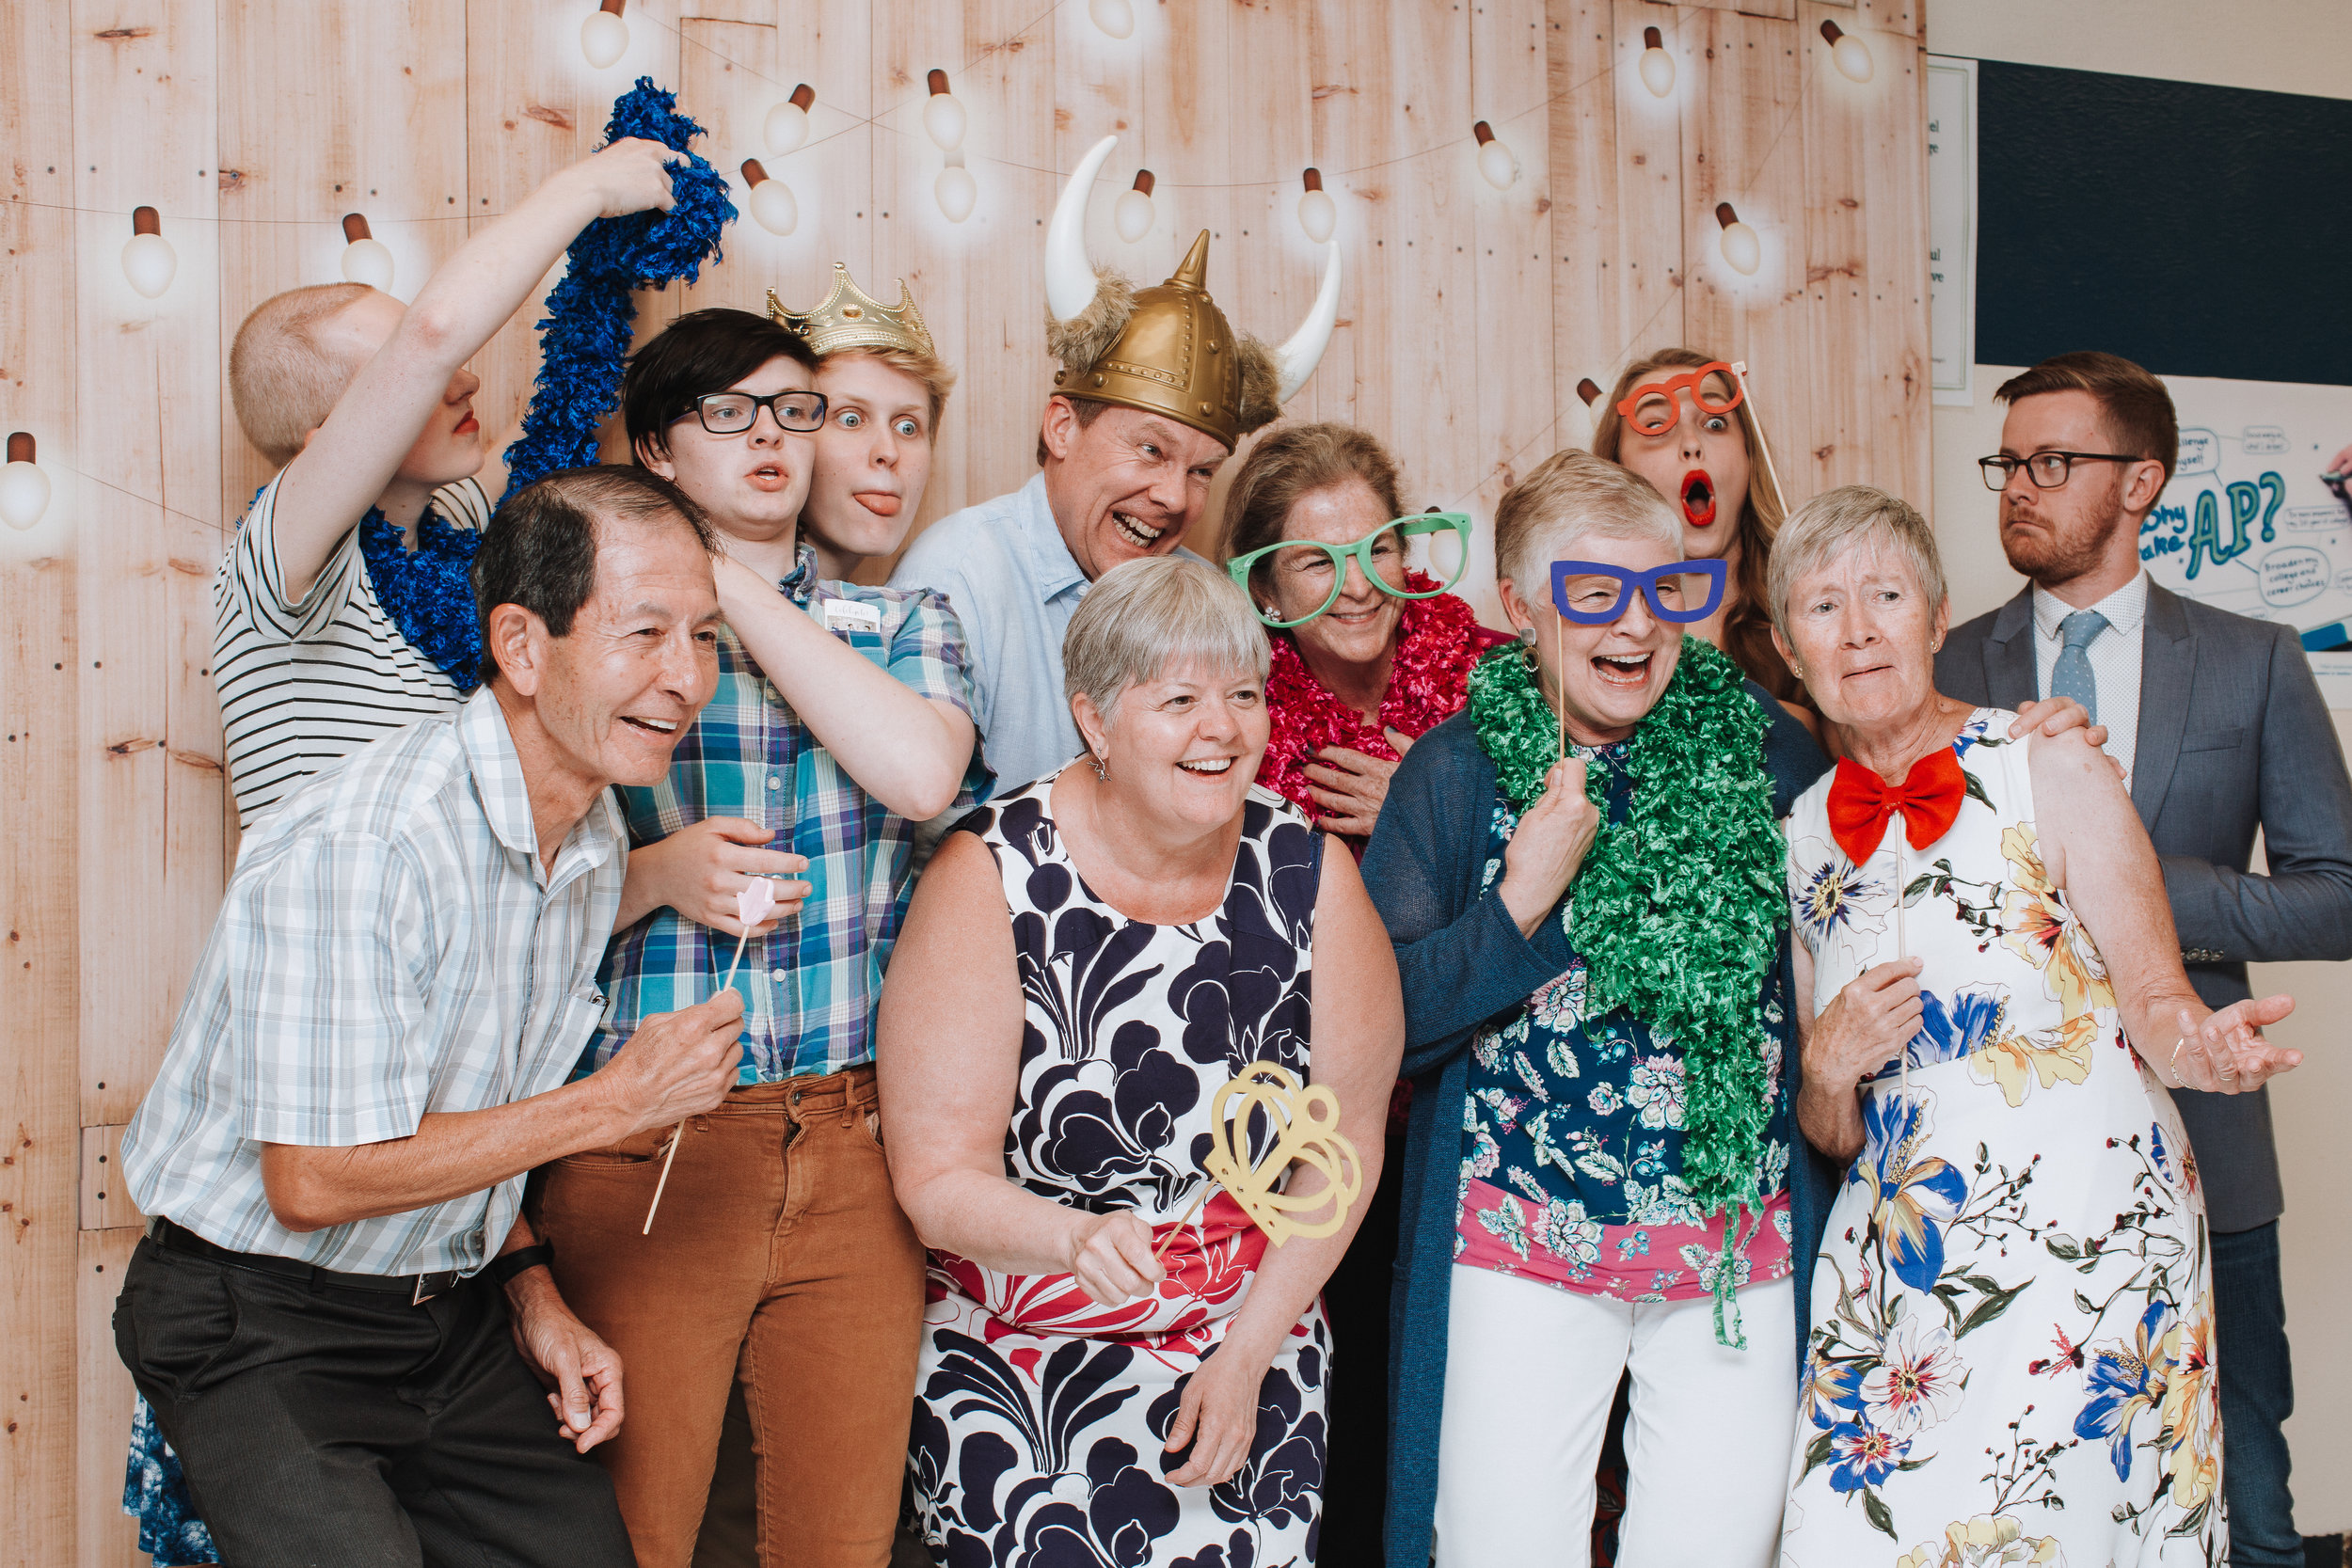 Photo Booth Family Reunion | Boston Family Photographer